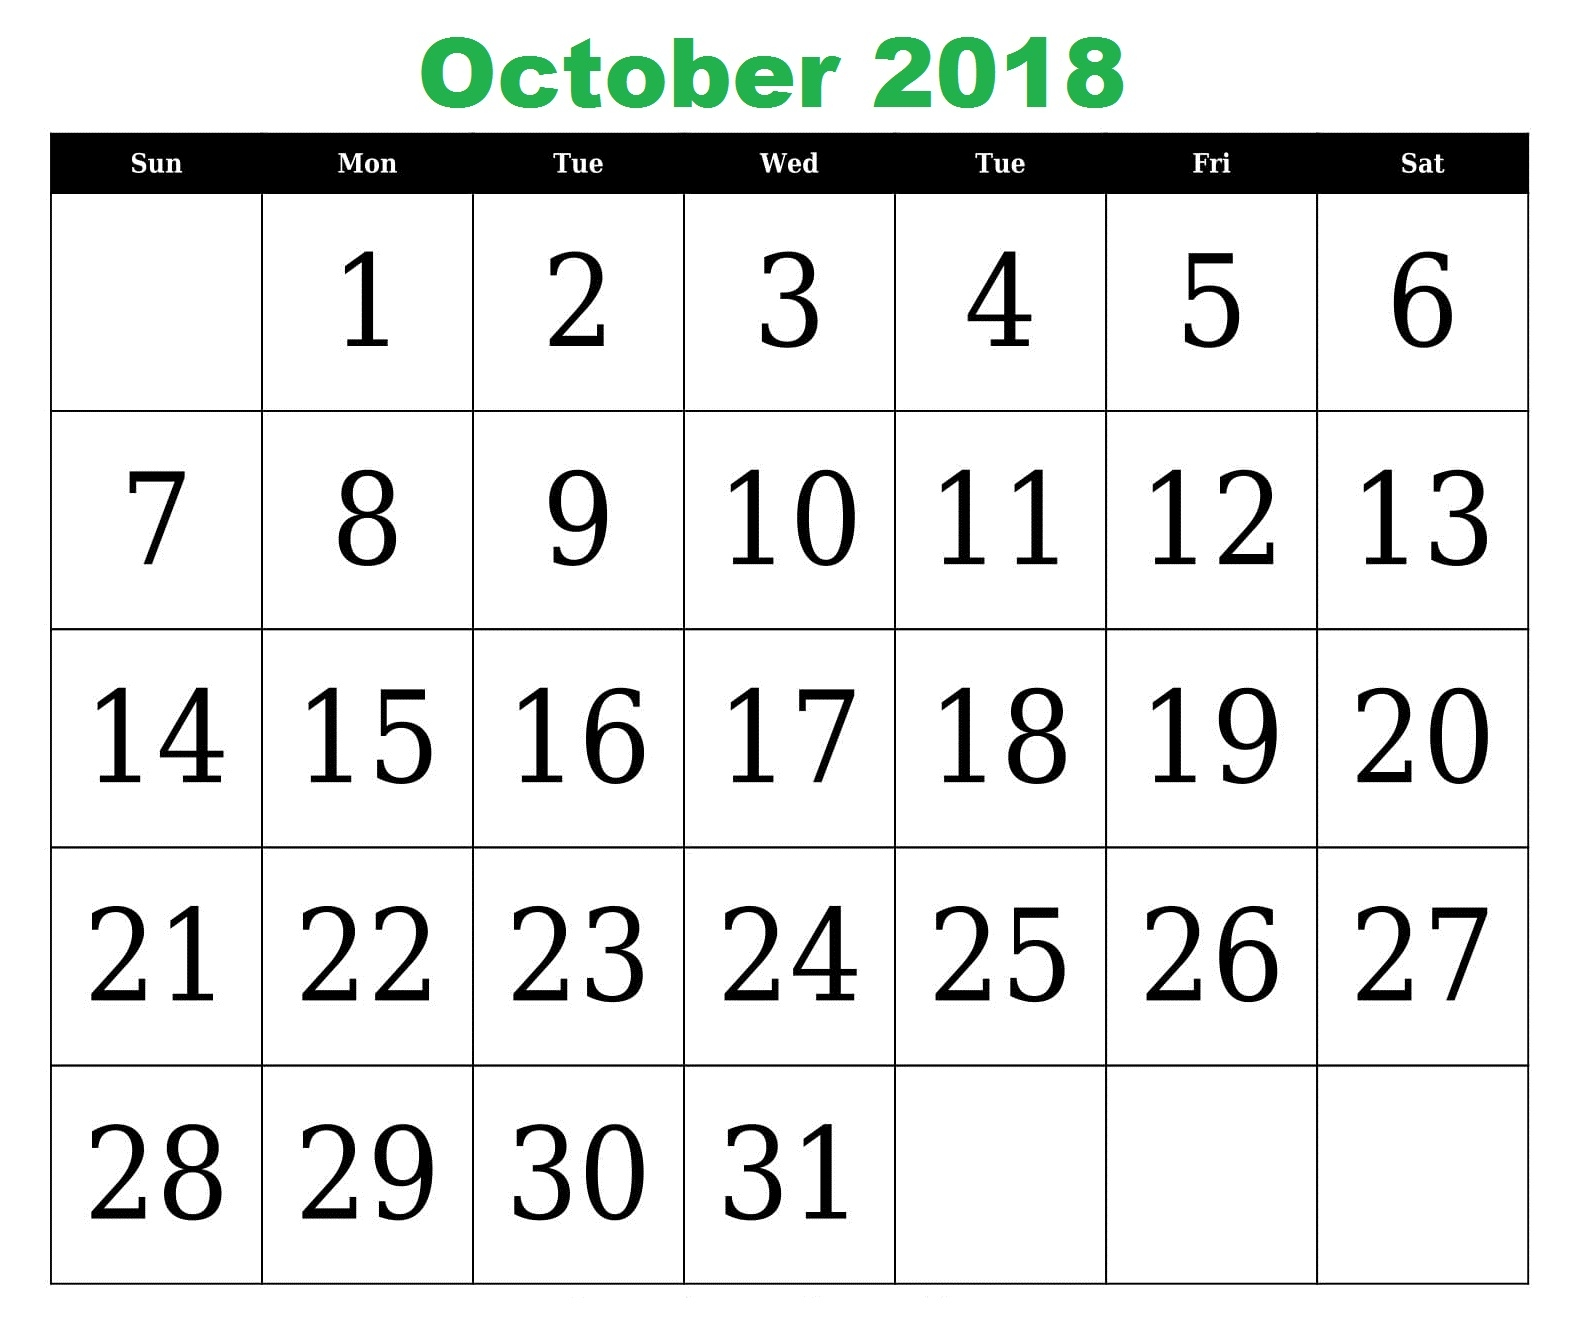 october 2018 calendar printable free site provides all october Calendar October 2018 Template erdferdf